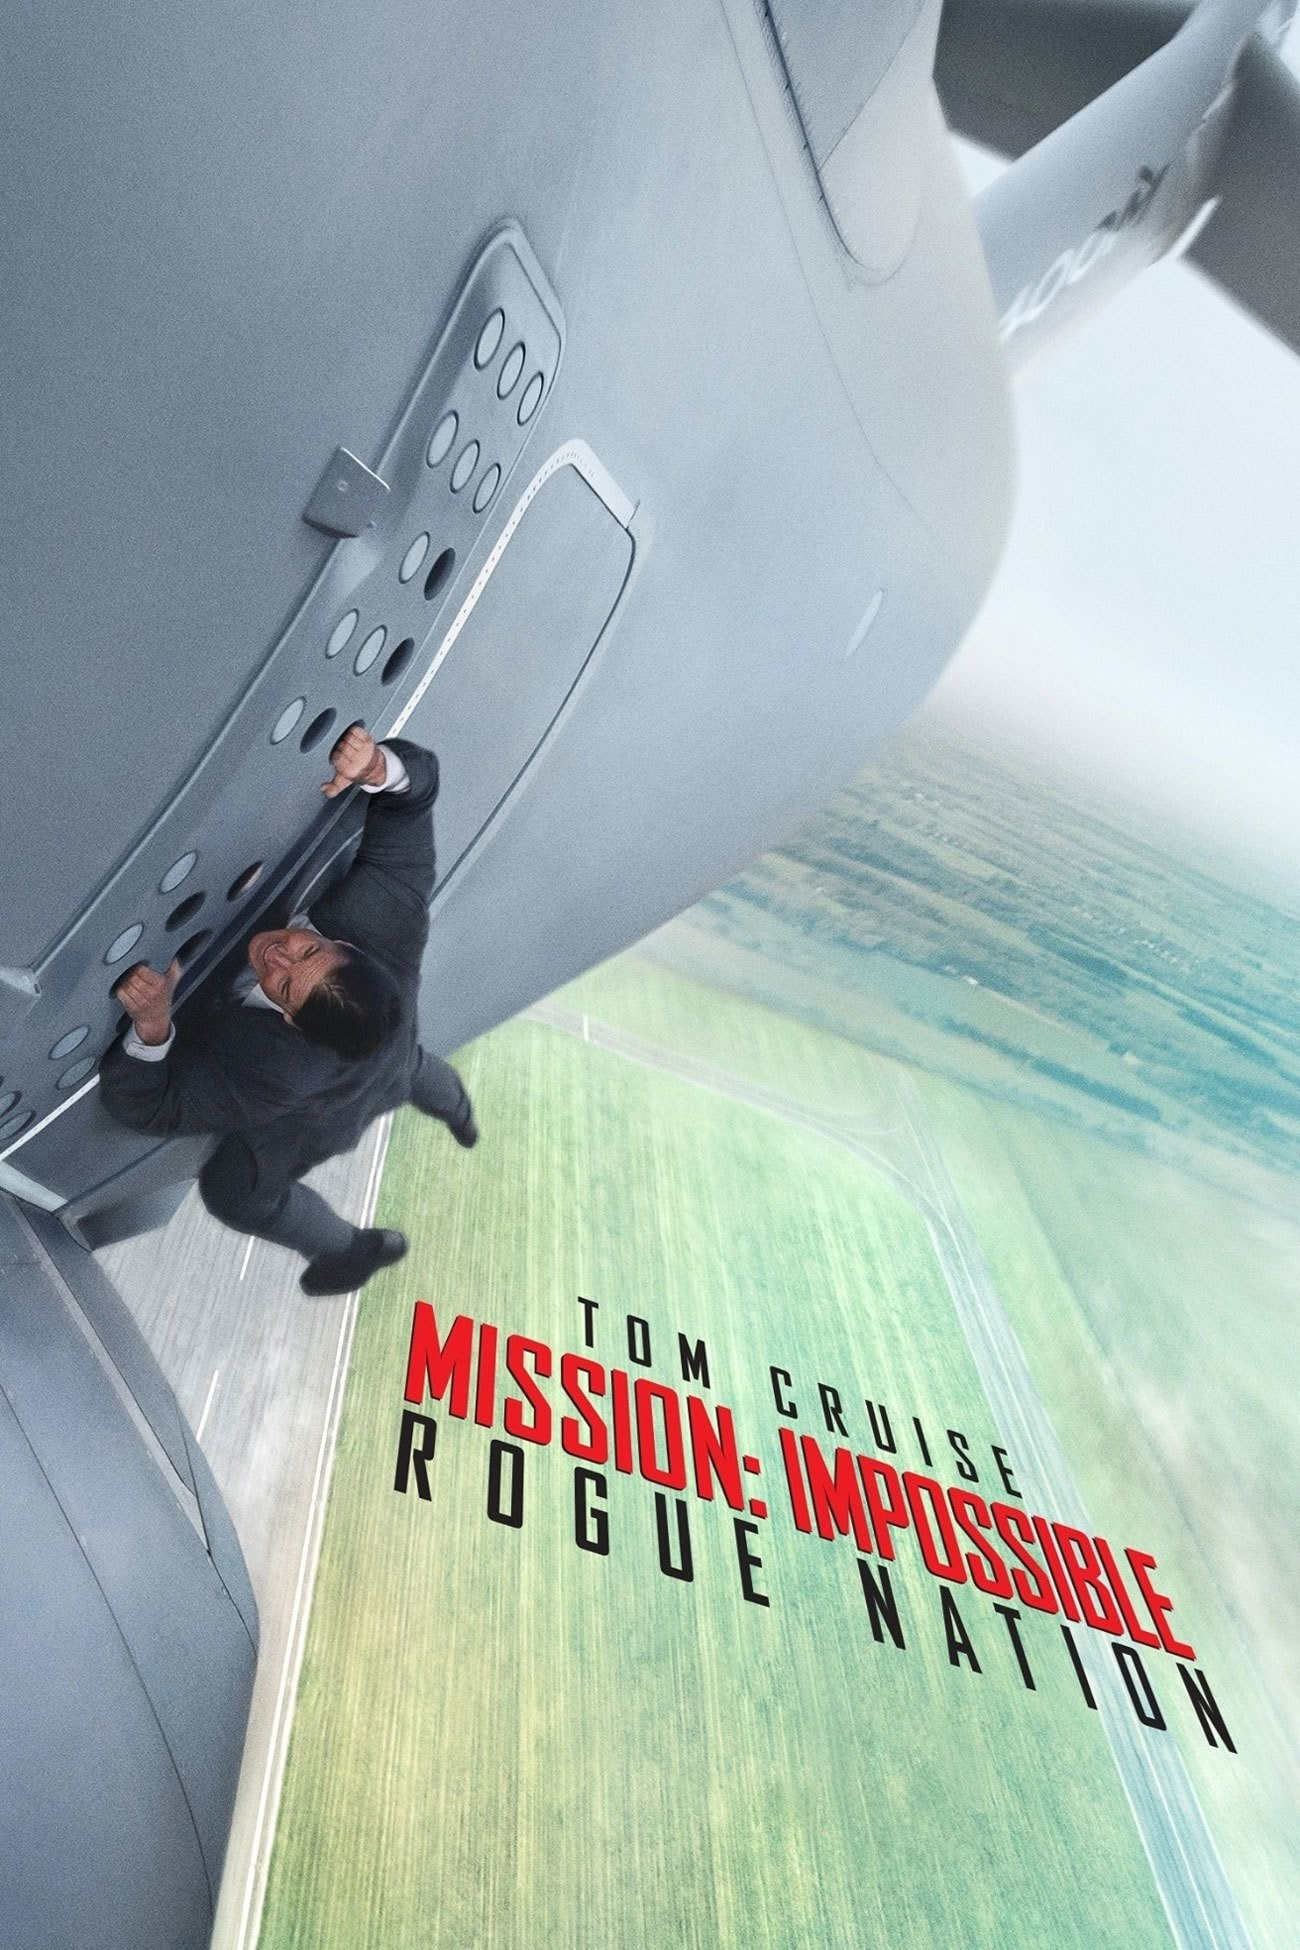 Mission: Impossible - Rogue Nation HQ wallpapers